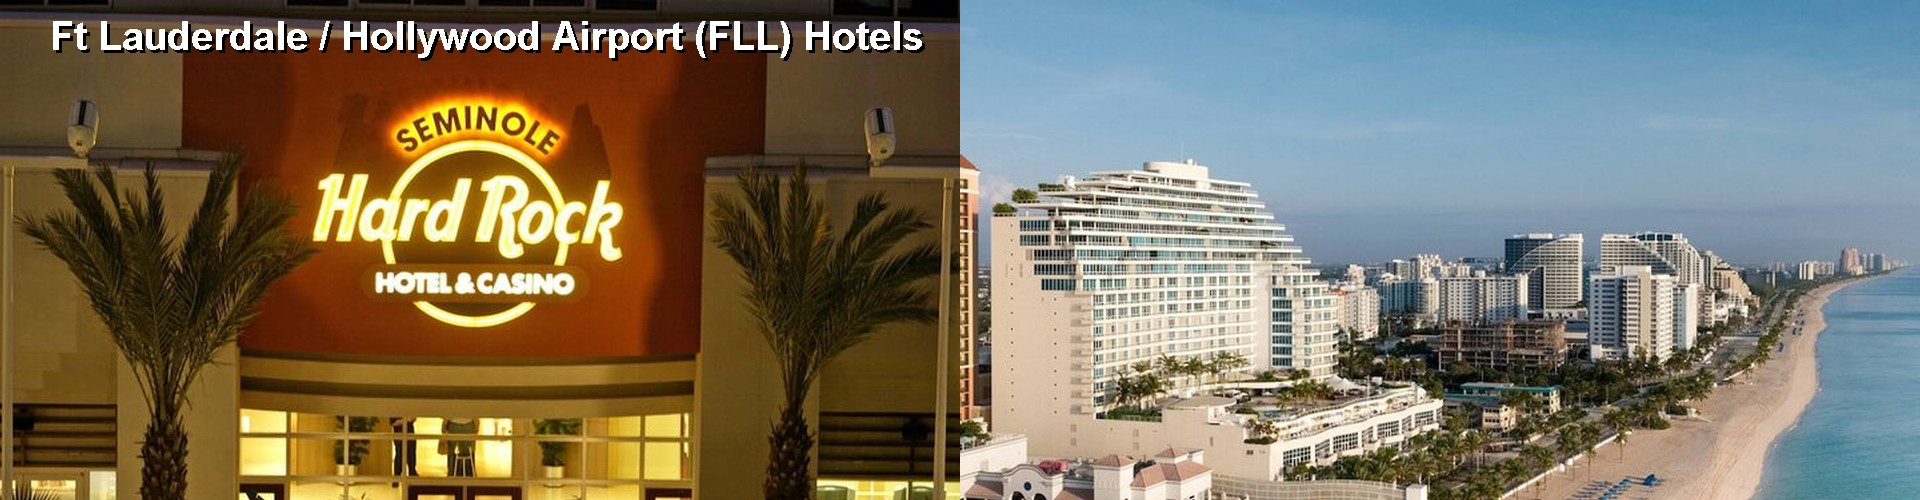 5 Best Hotels near Ft Lauderdale / Hollywood Airport (FLL)